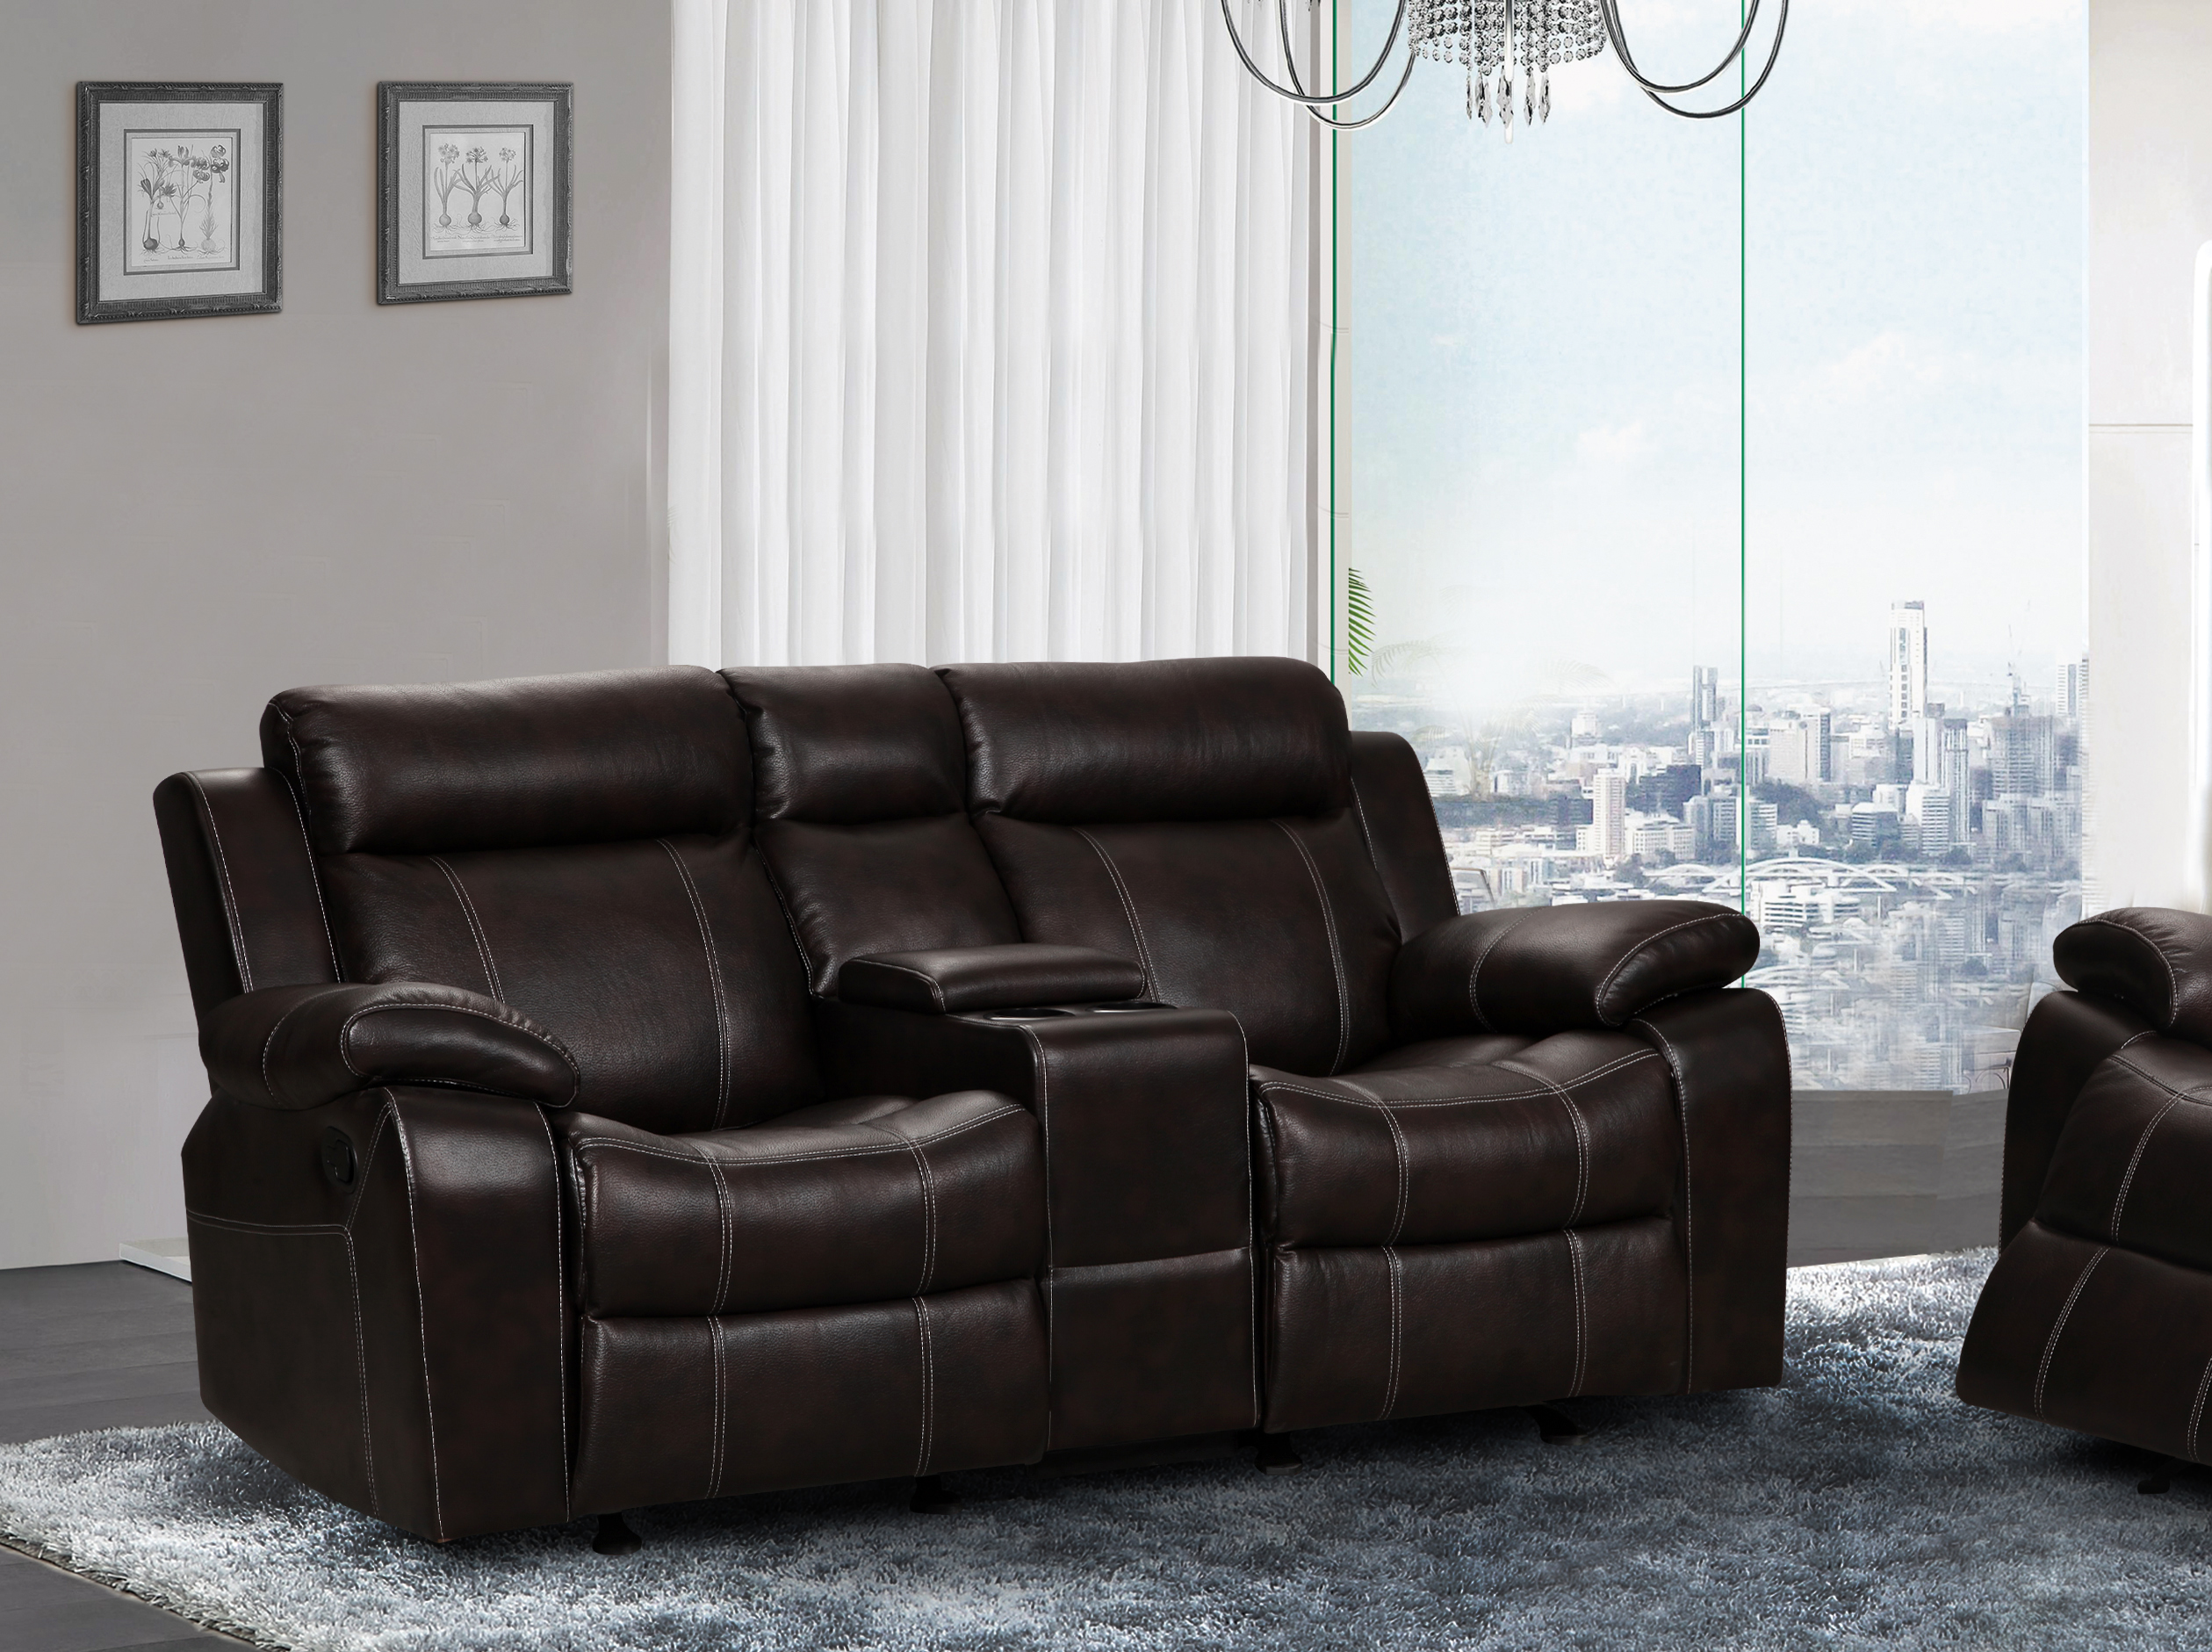 Vivienne Dark Brown Leather Air Rocking Reclining Loveseat with Console  sc 1 st  Walmart & Vivienne Dark Brown Leather Air Rocking Reclining Loveseat with ... islam-shia.org